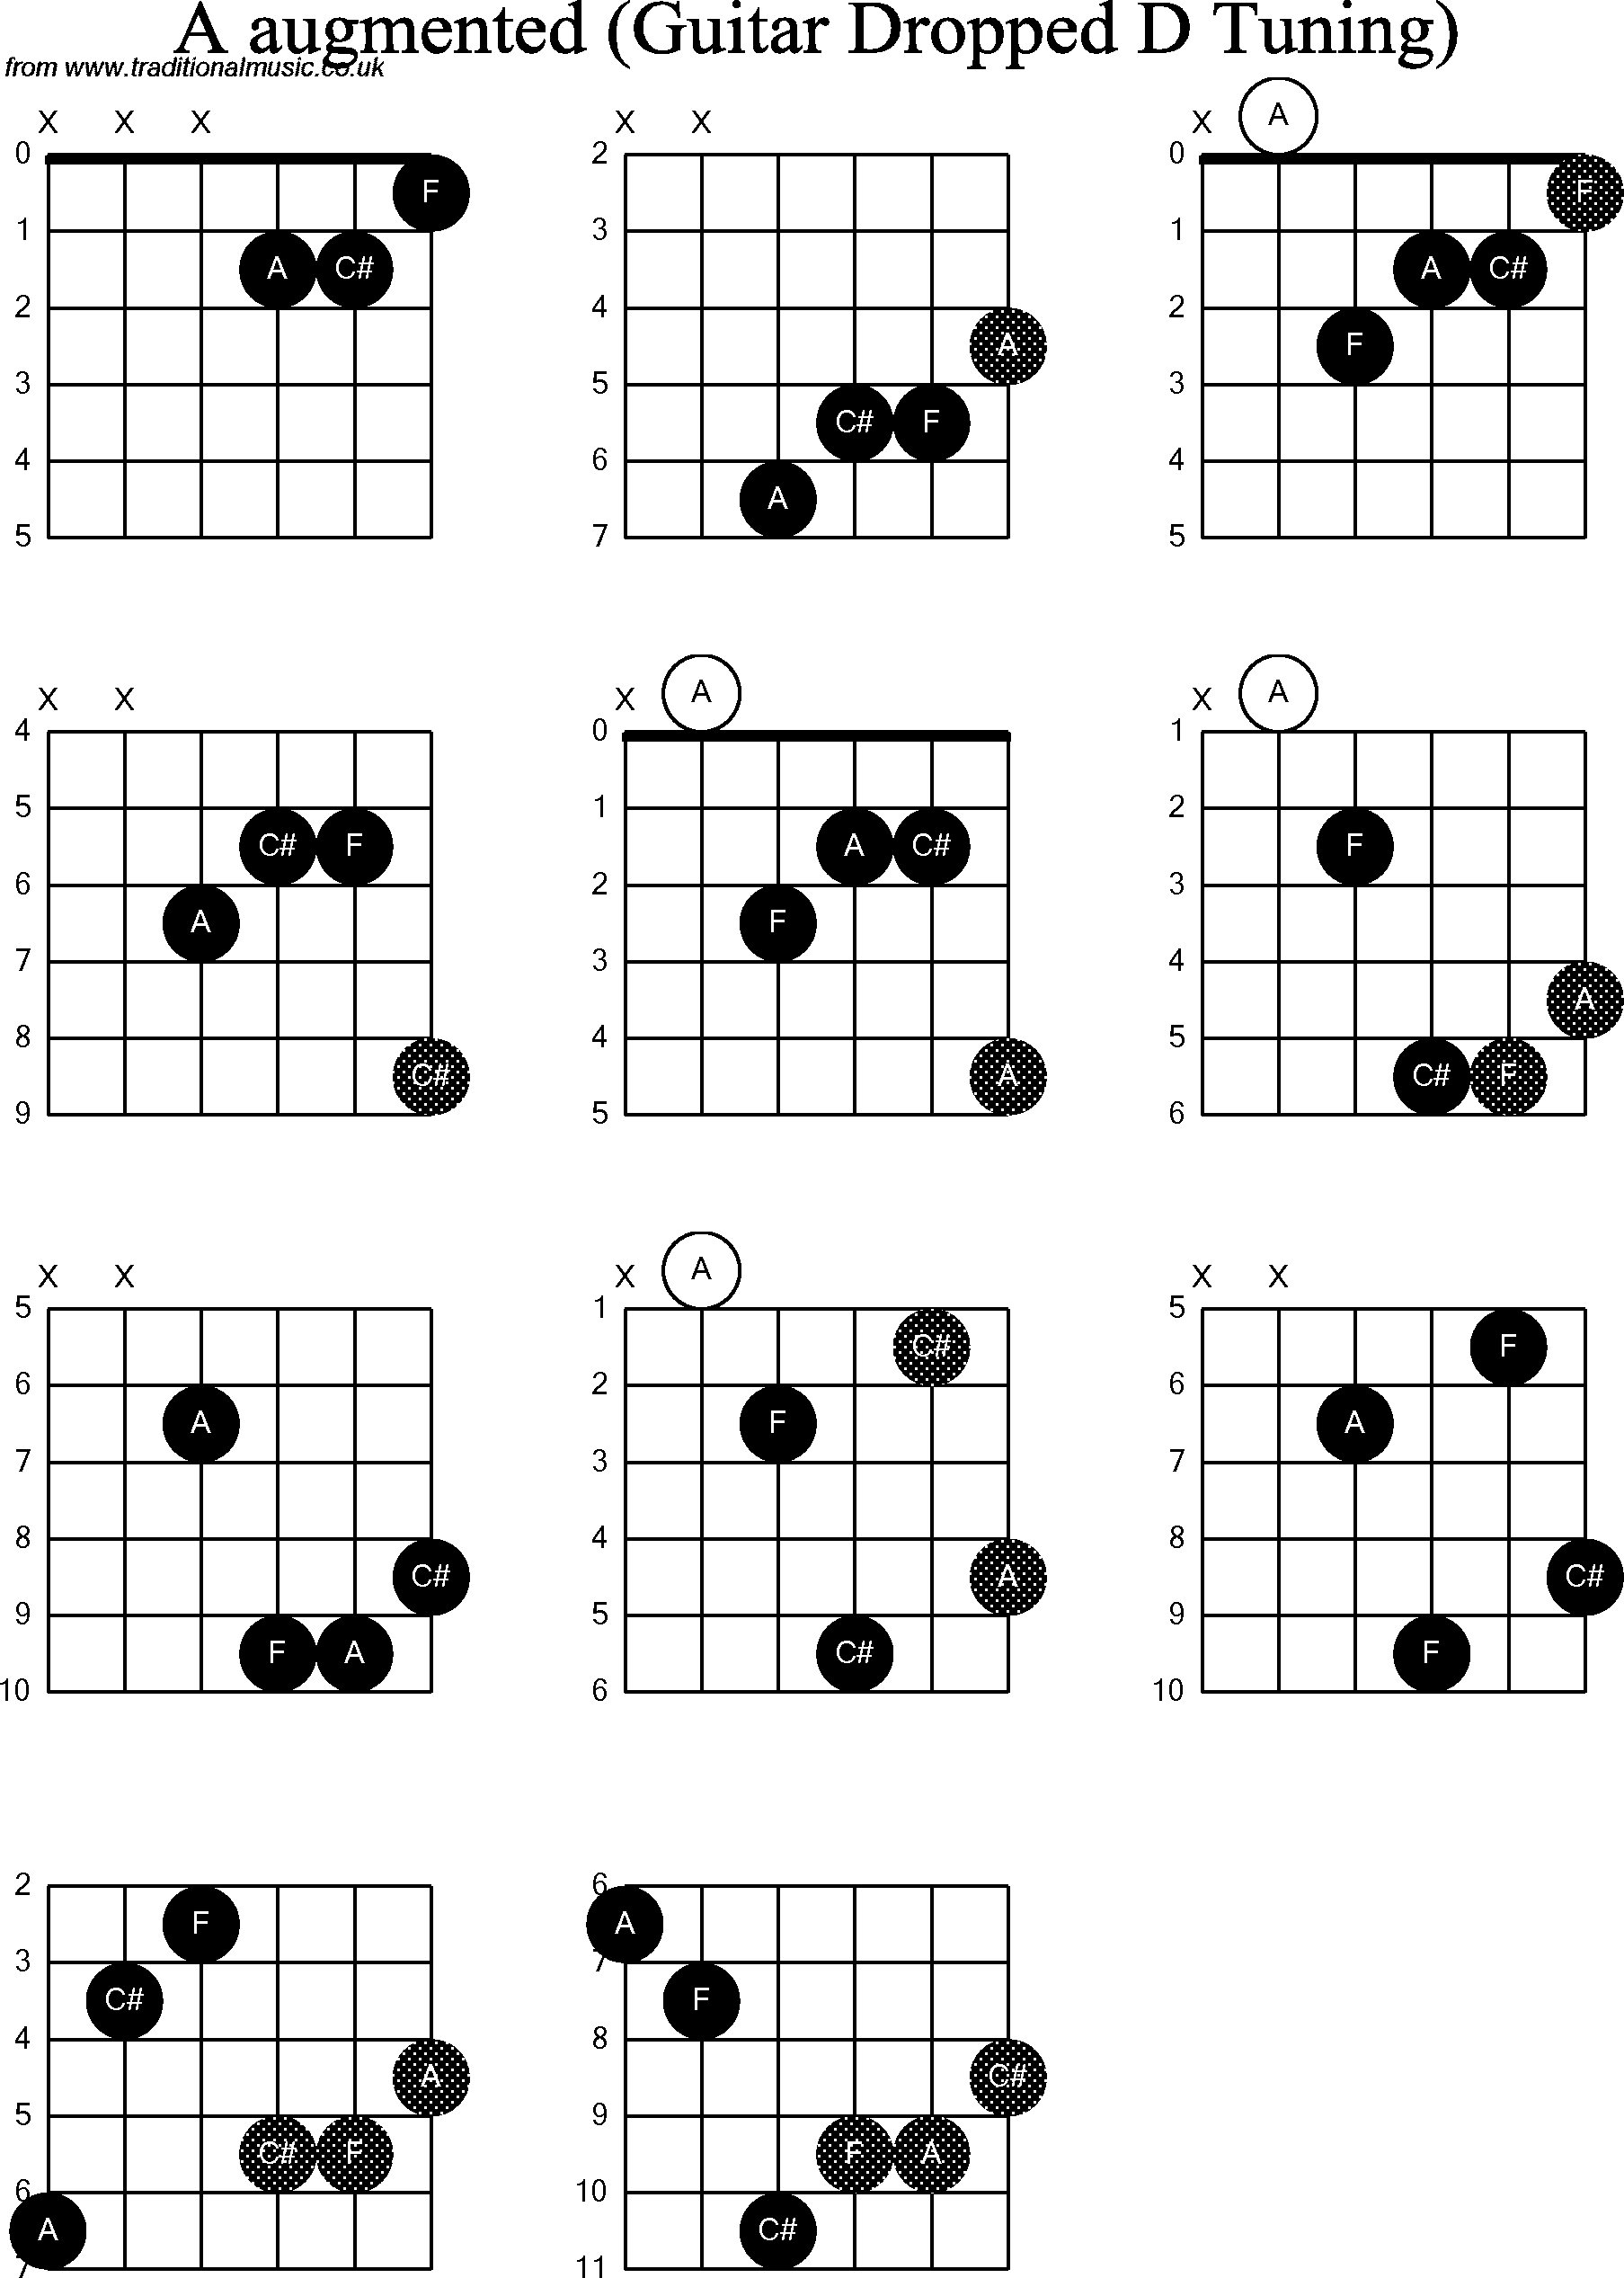 Chord Diagrams For Dropped D Guitardadgbe A Augmented